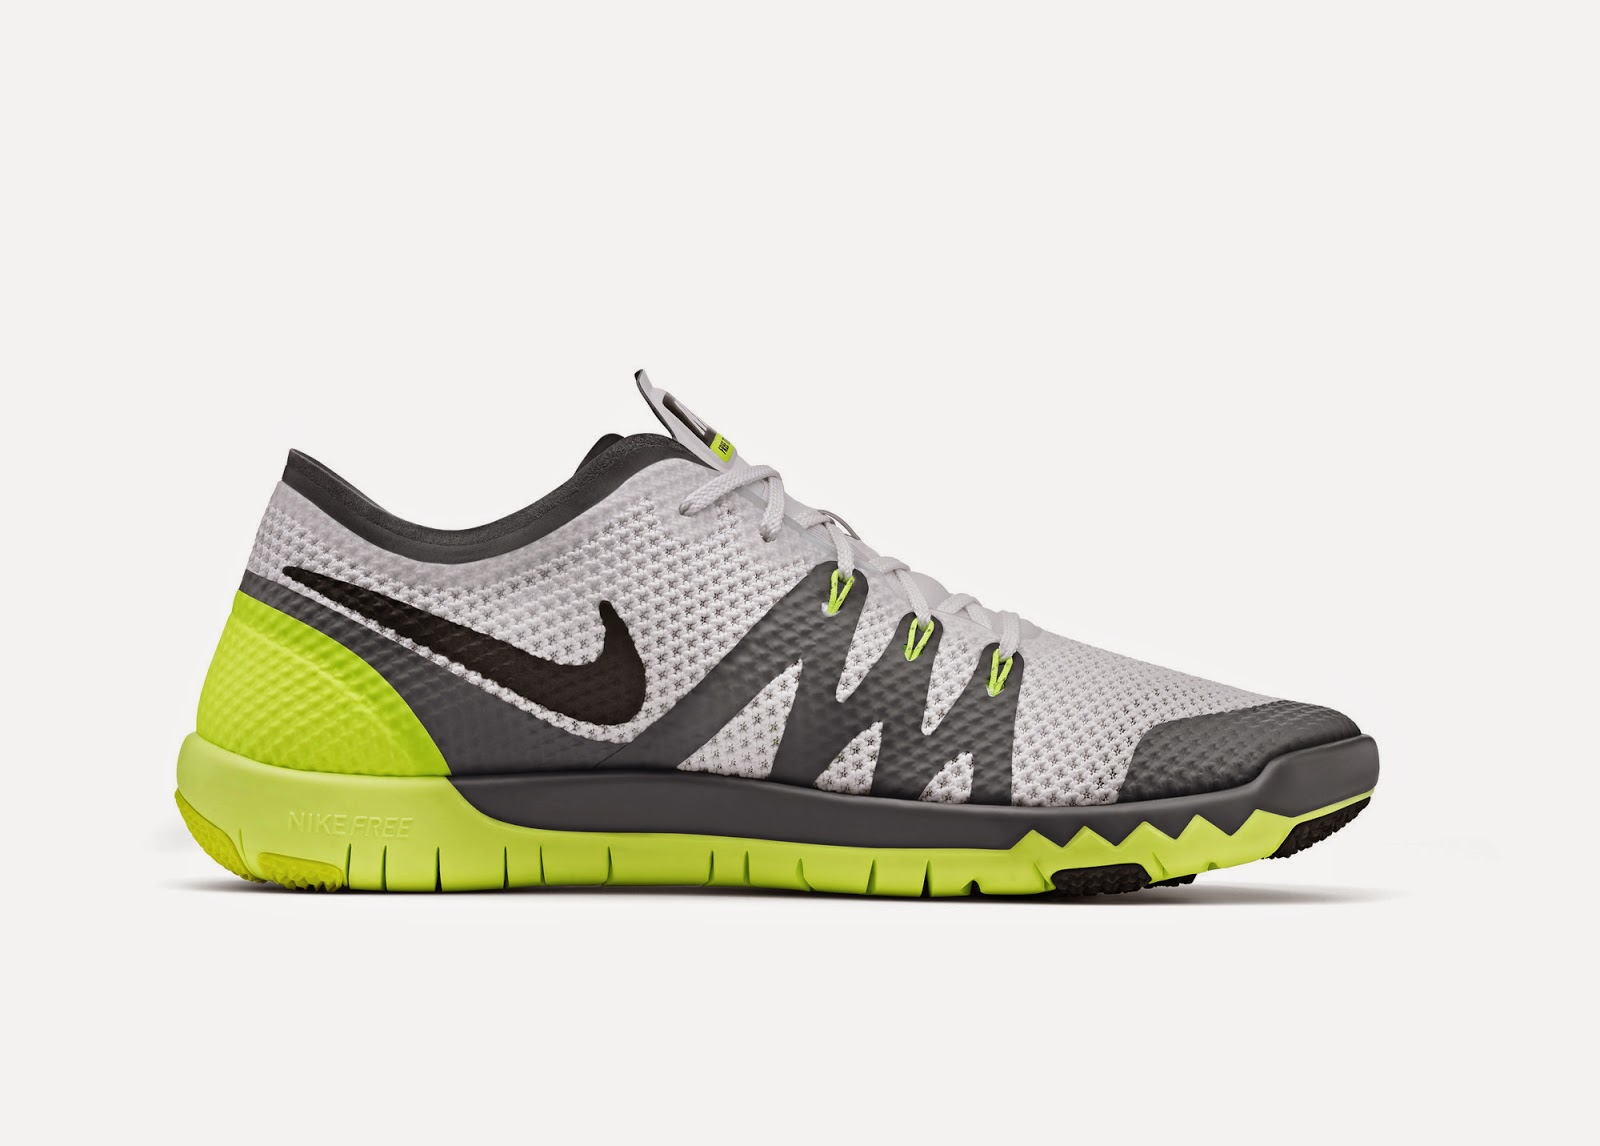 check out 8e546 01bdc Im the proud owner of two pairs of Nikes (thats right, two whole pairs!)  - one, a pair of black Nike Free 5.0 the other, a pair of Nike Free  Trainer 5.0 ...